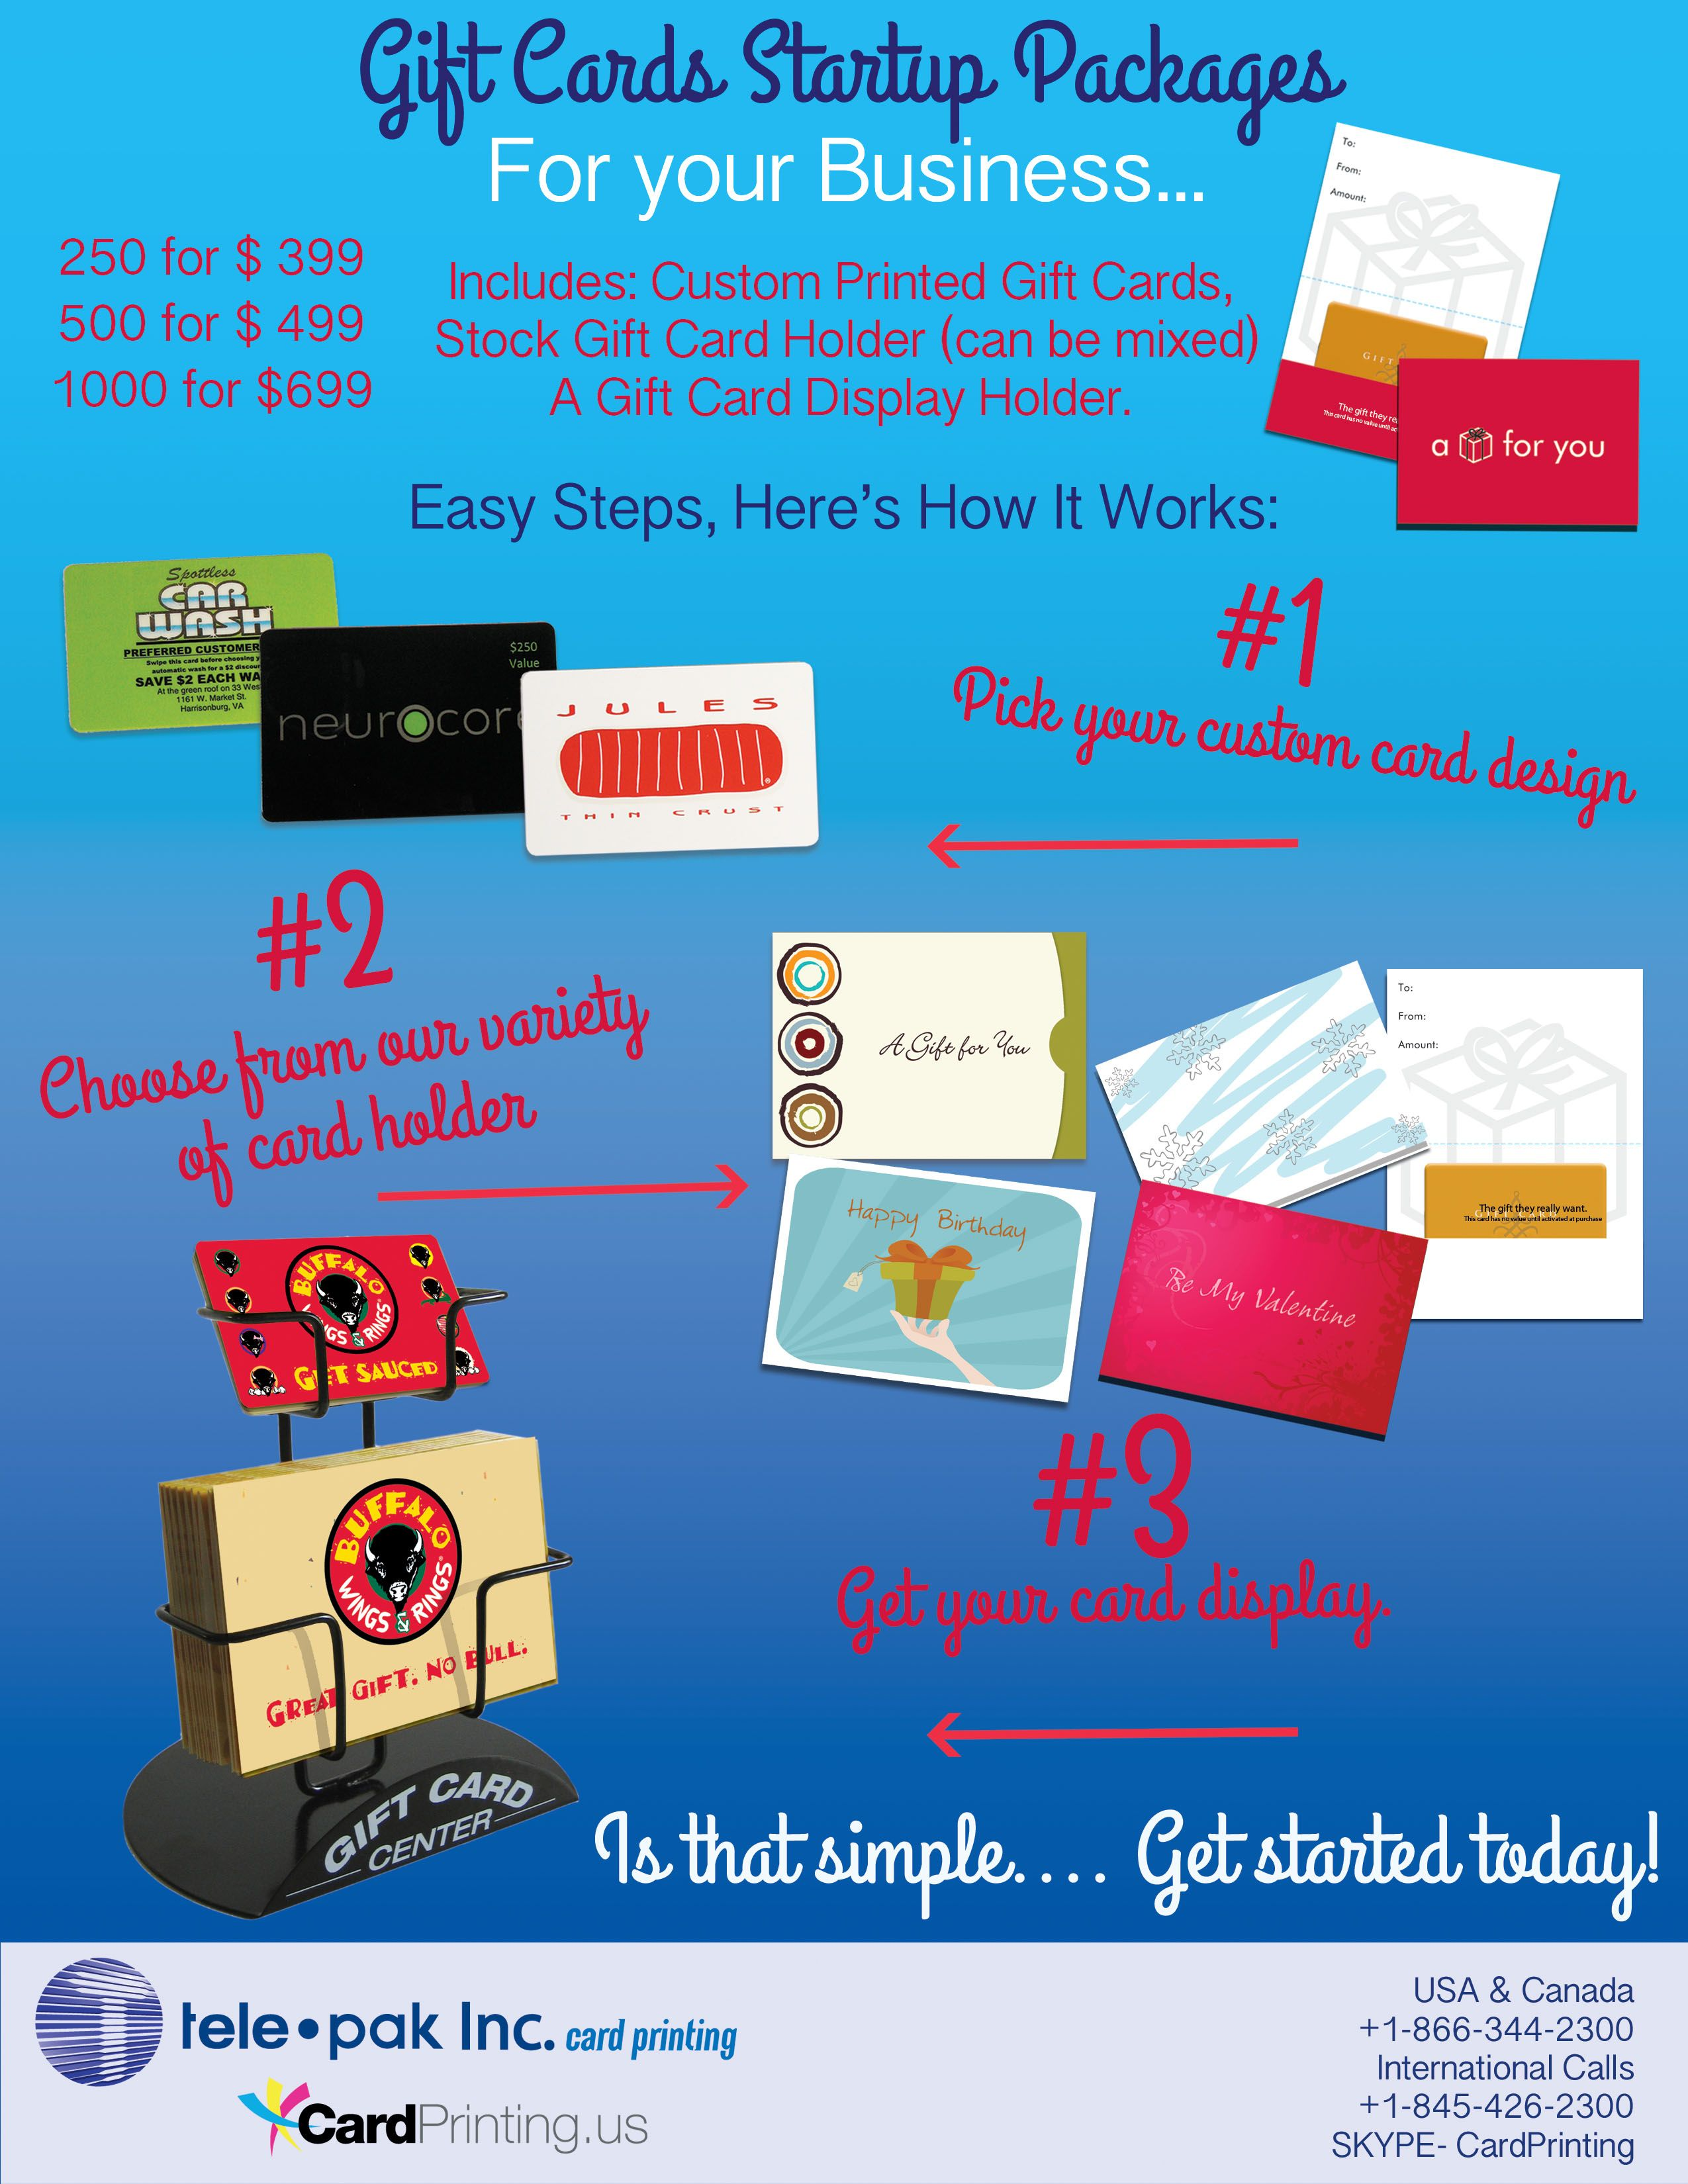 250 custom gift cards 250 stock gift card holders A gift card ...